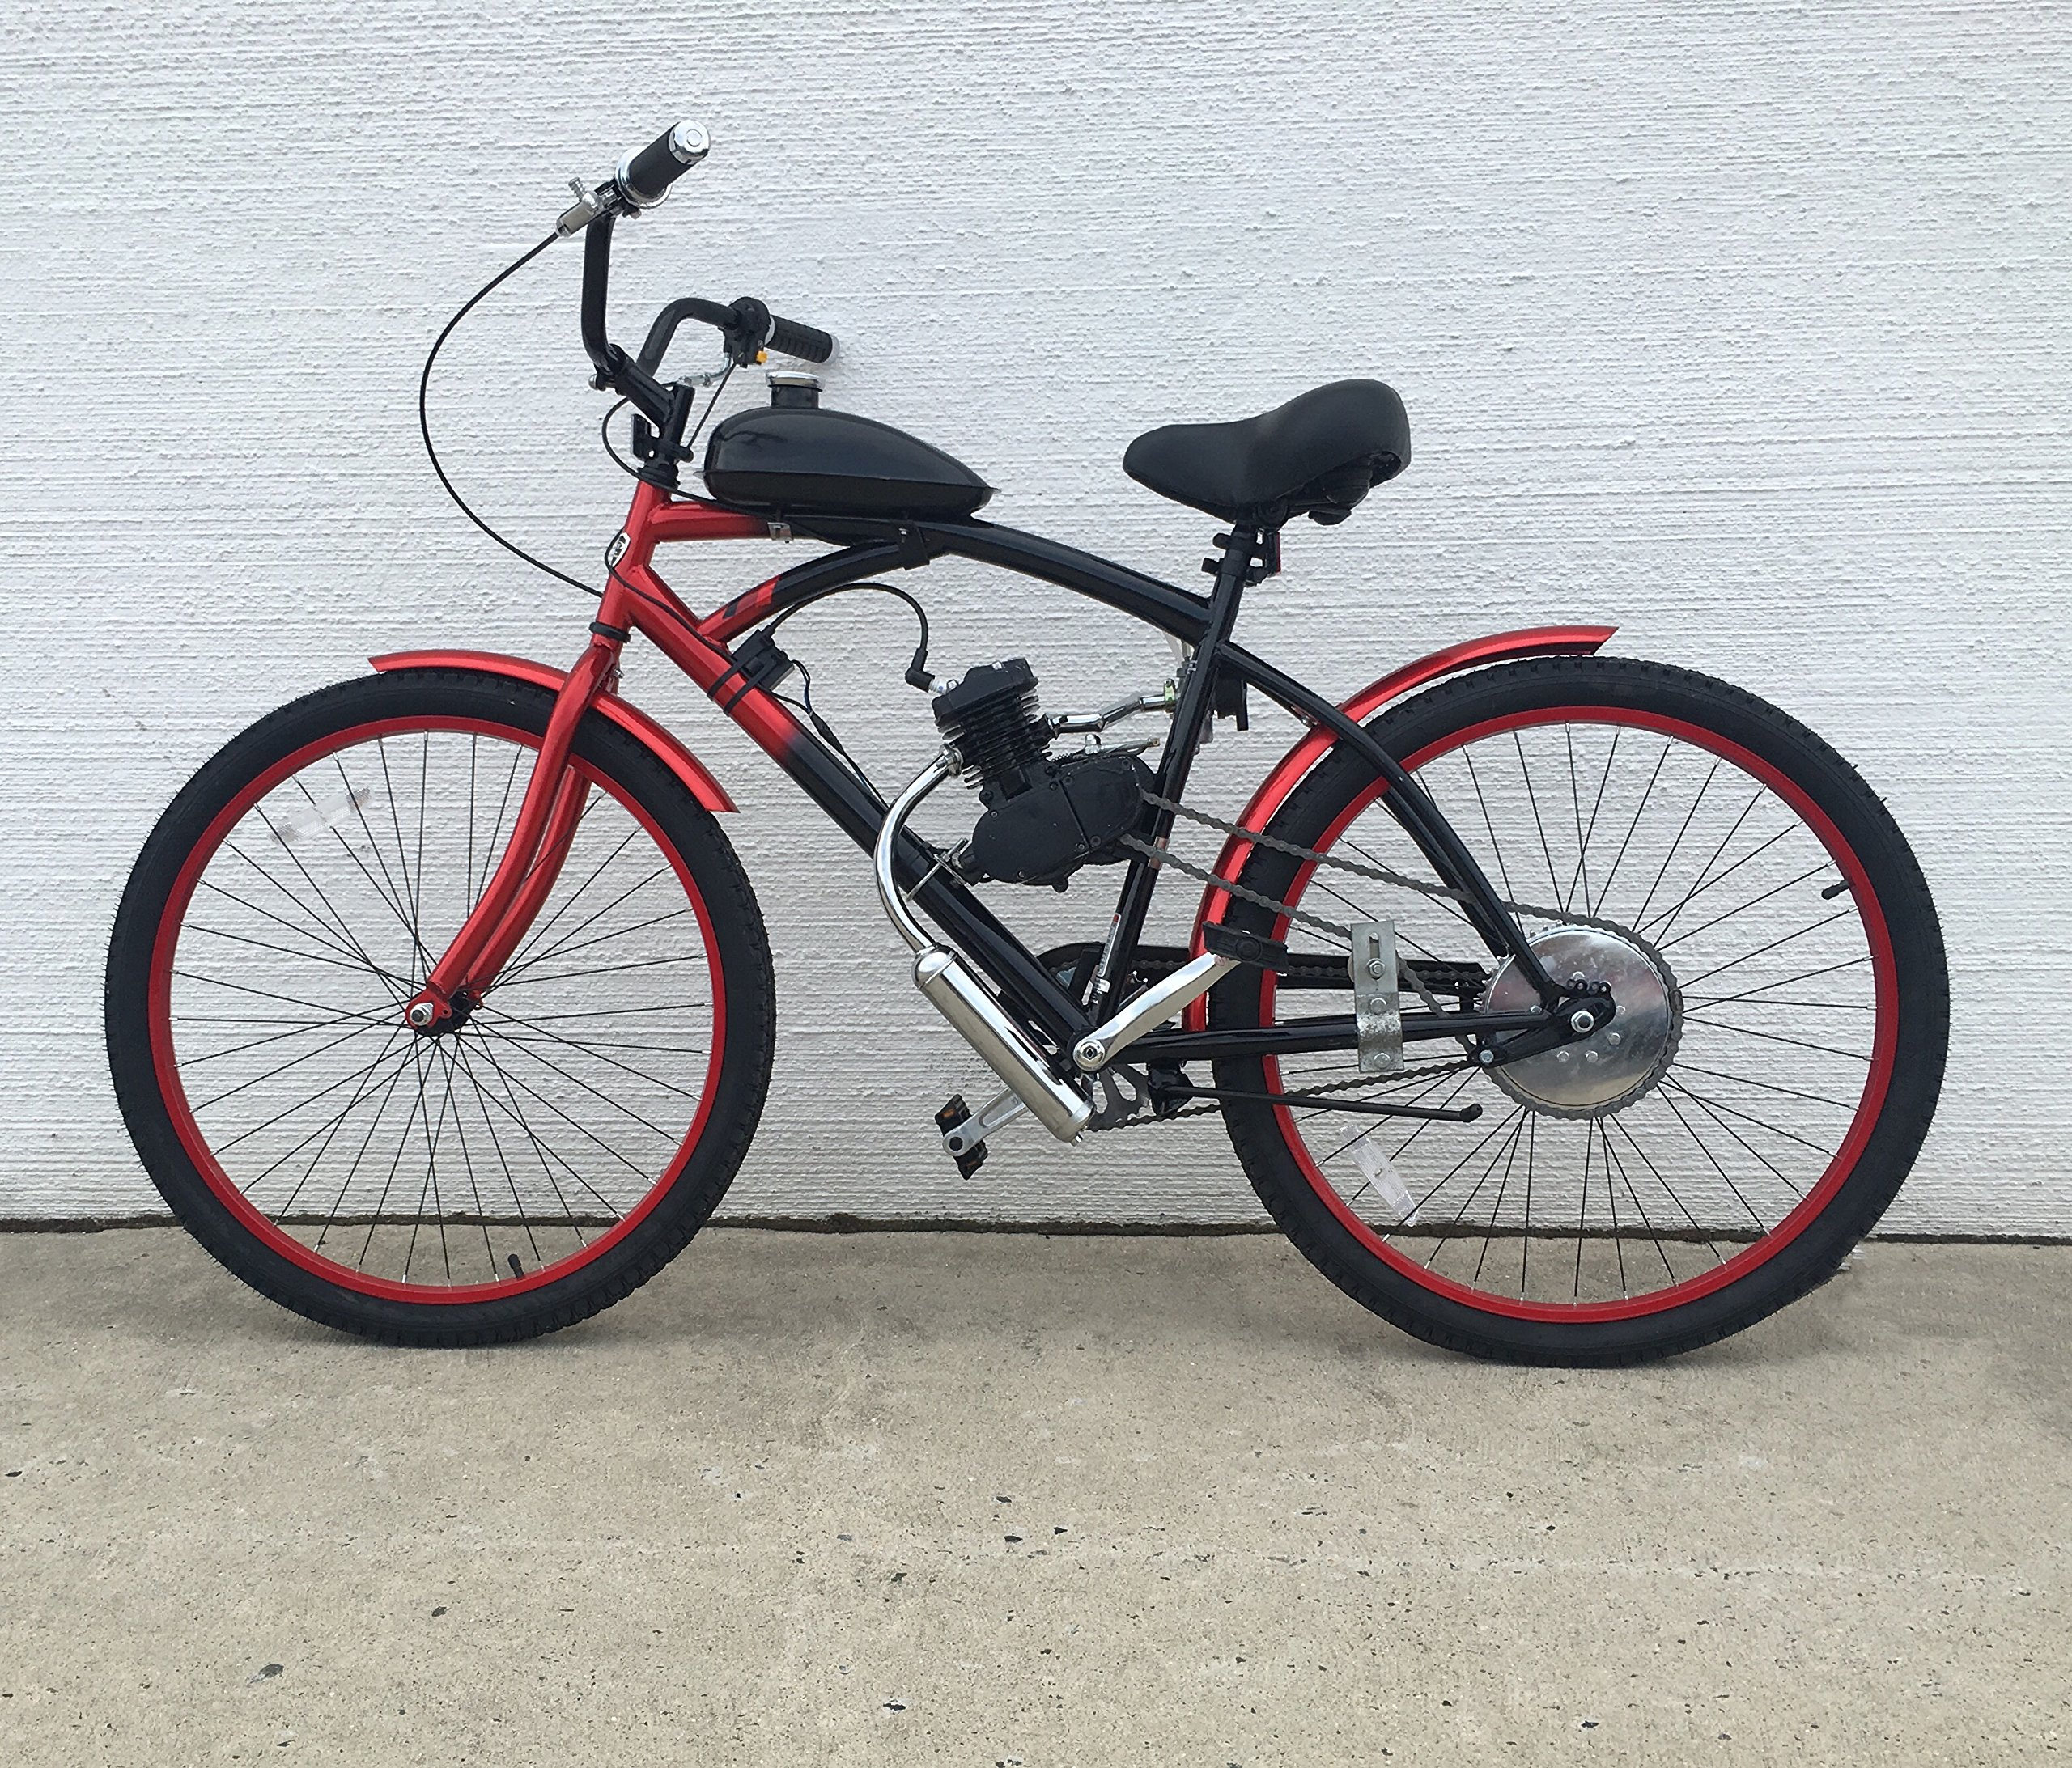 Bicycle Motor Works - The Fire Fly Motorized Bike Kit